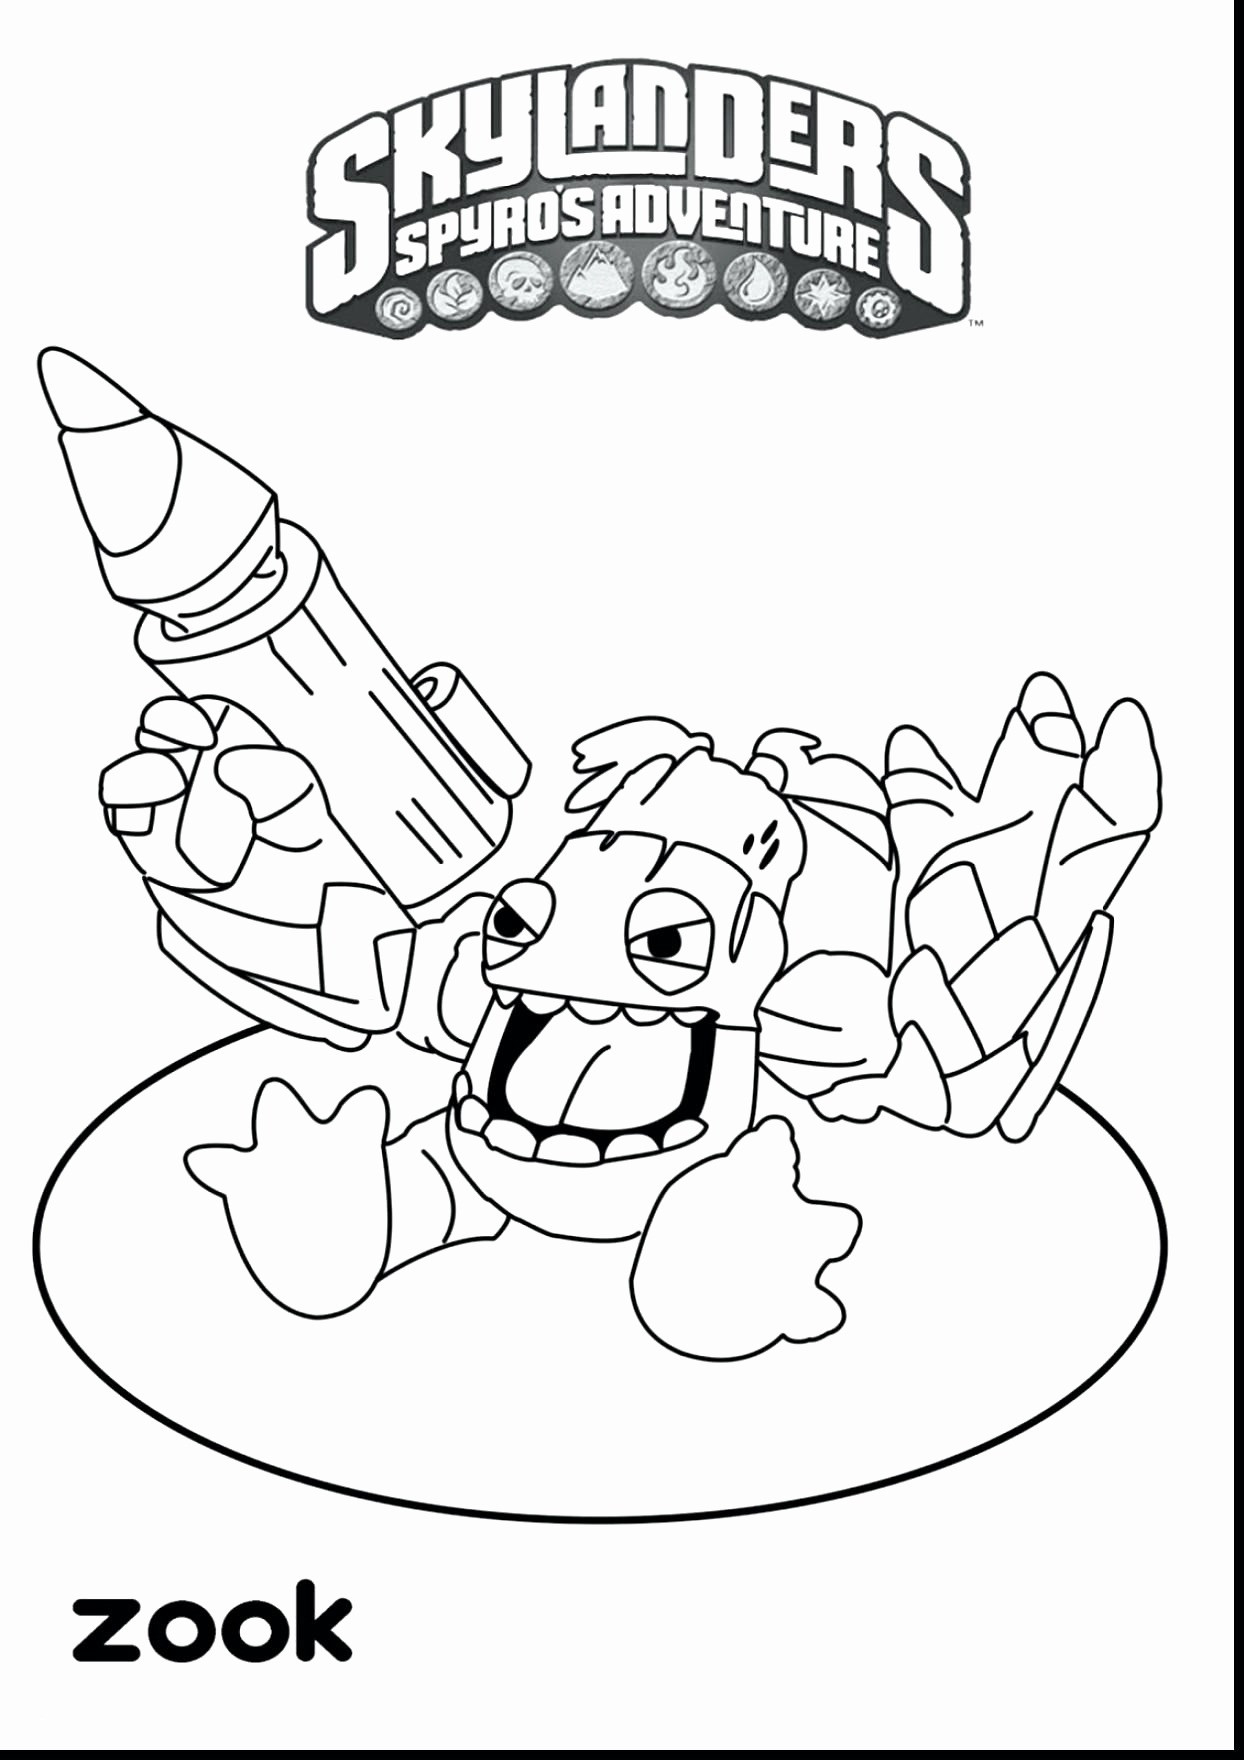 African Safari Coloring Pages  Printable 20c - Save it to your computer